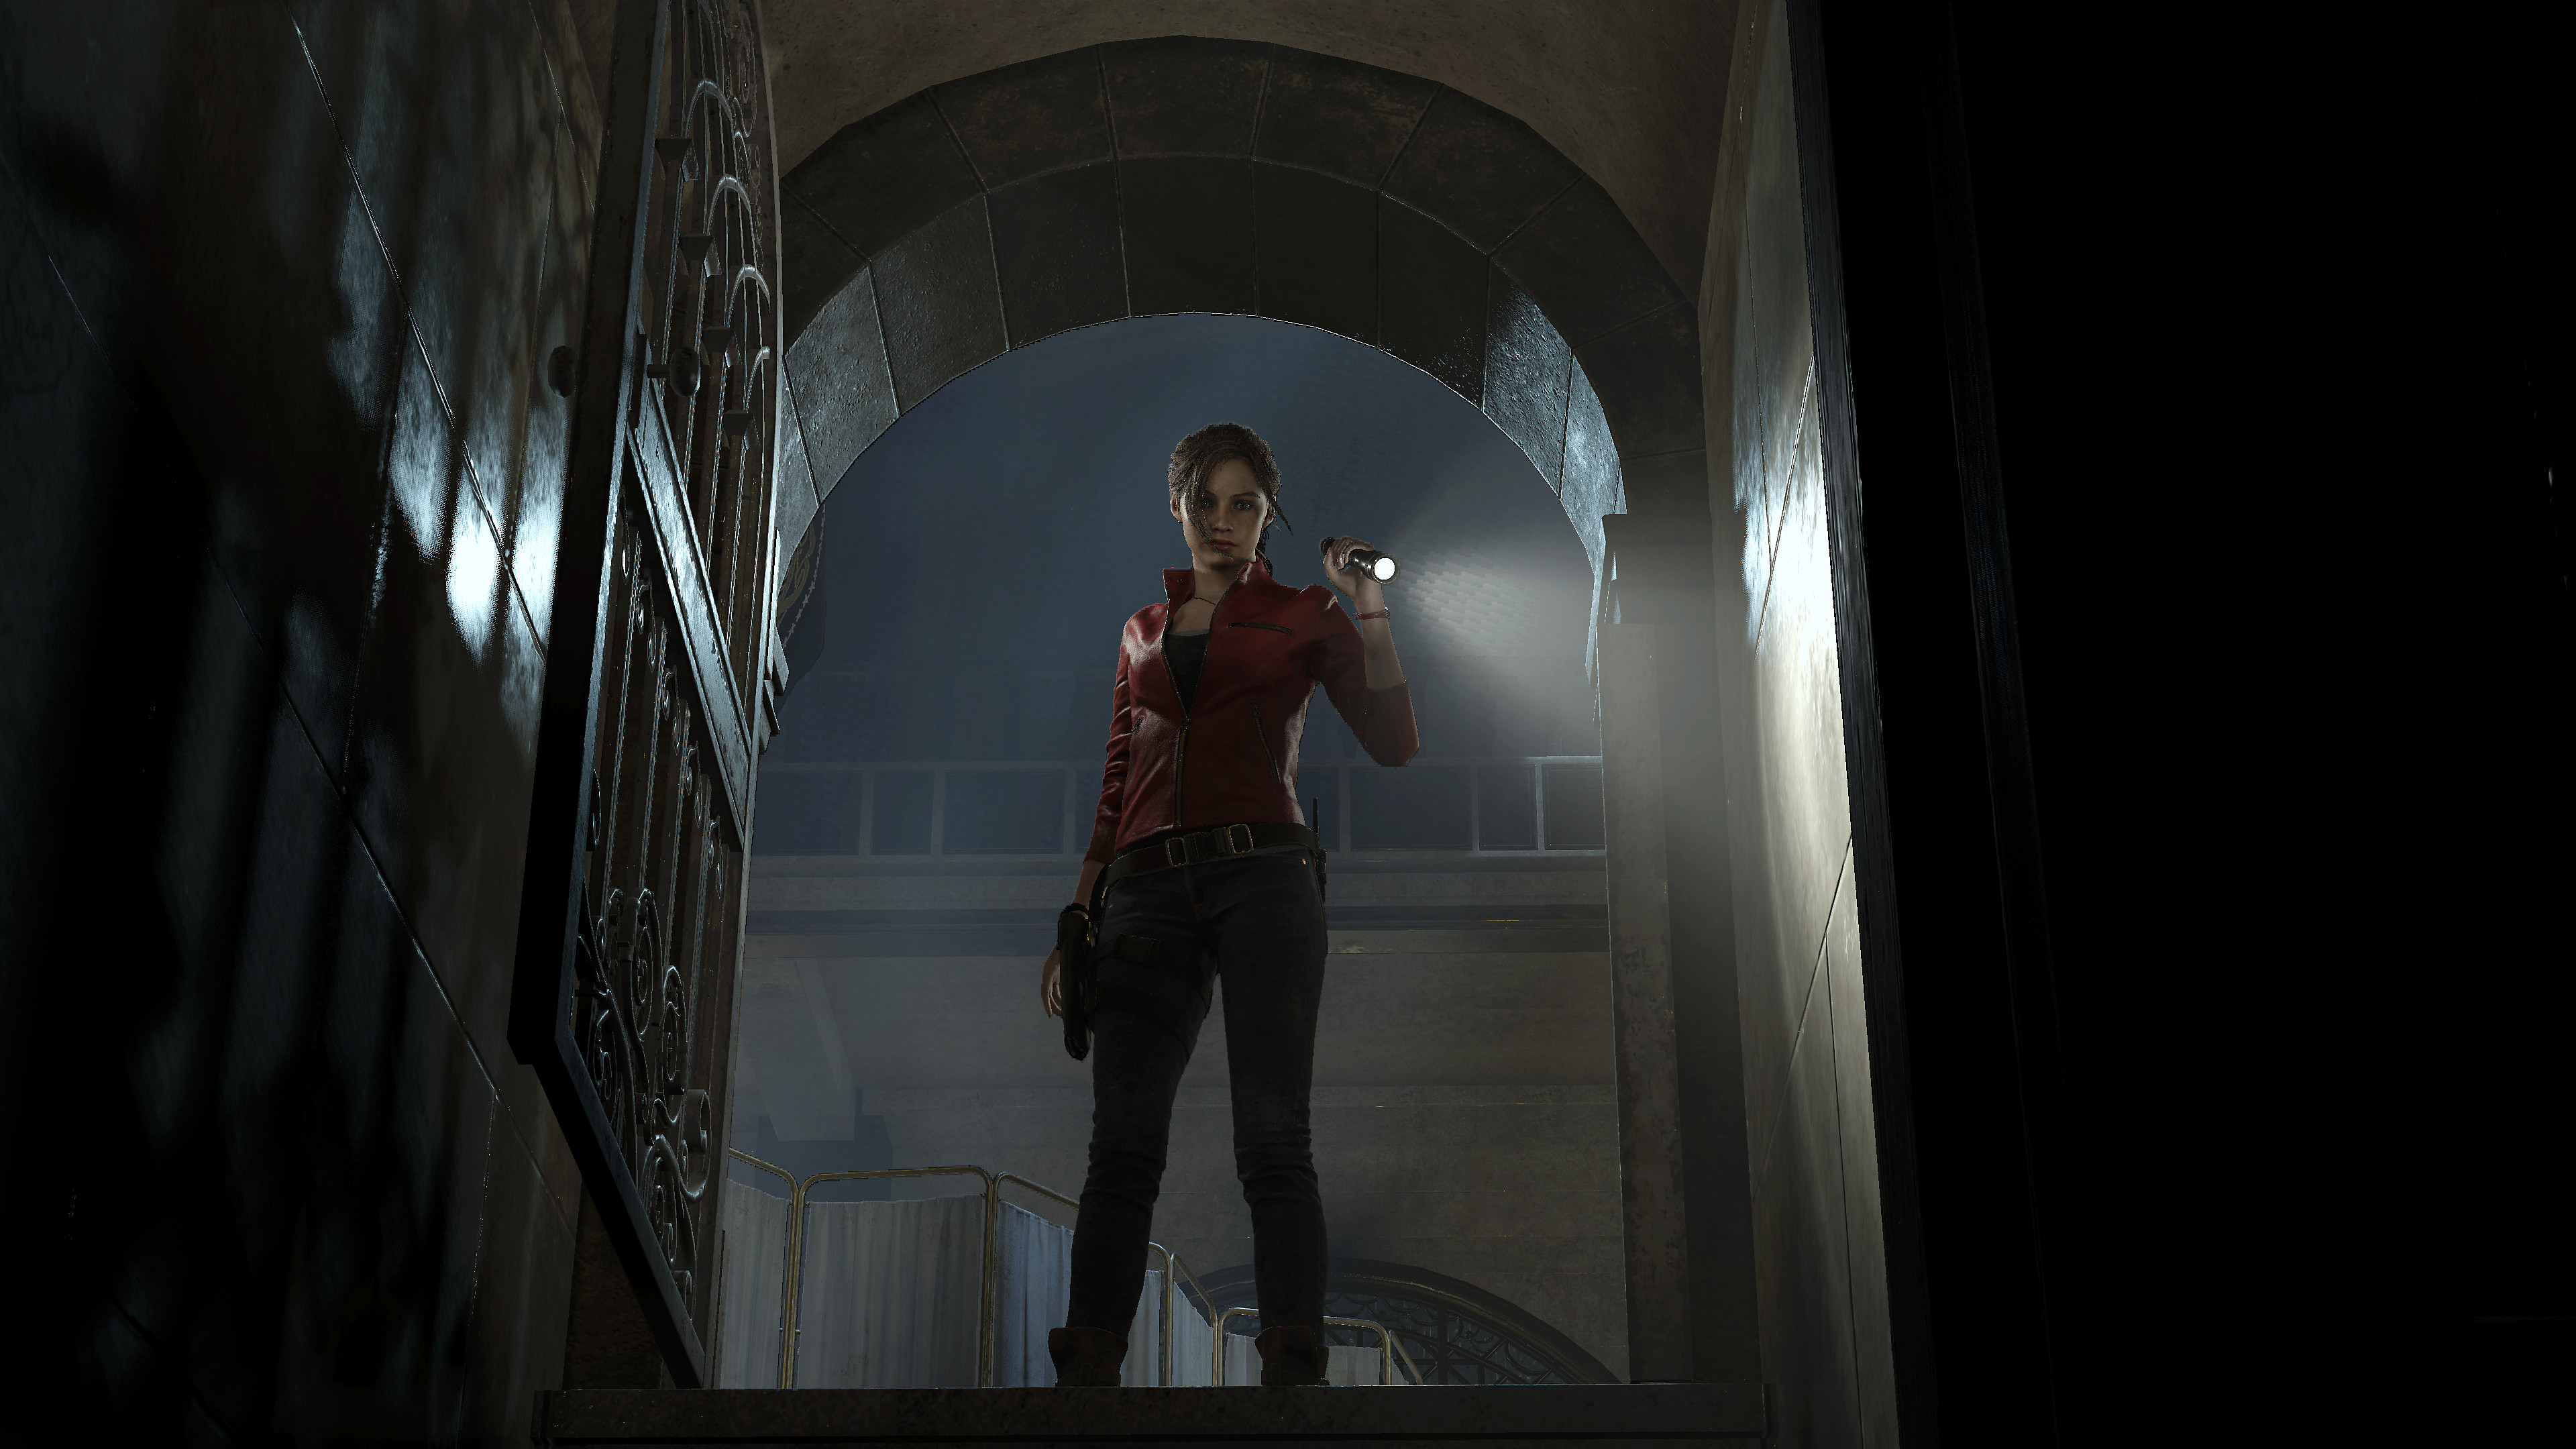 Resident Evil 2 Game Features Screenshot 3 - Claire with a Flashlight